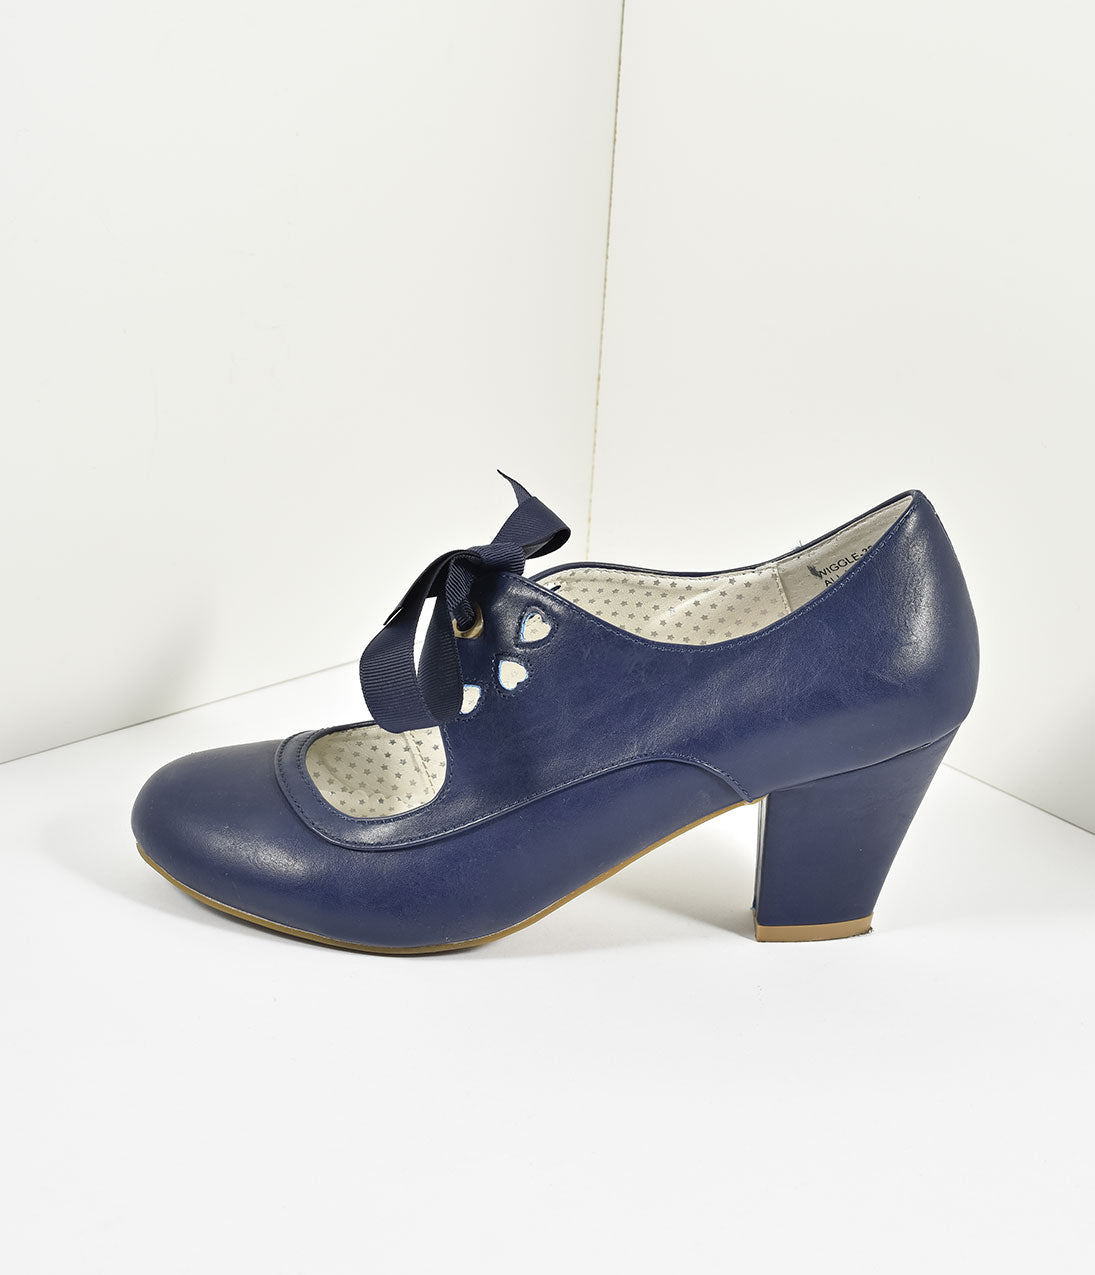 Art Deco Shoes Styles of the 1920s and 1930s Vintage Style Navy Blue Leatherette Mary Jane Bow Wiggle Heels $58.00 AT vintagedancer.com